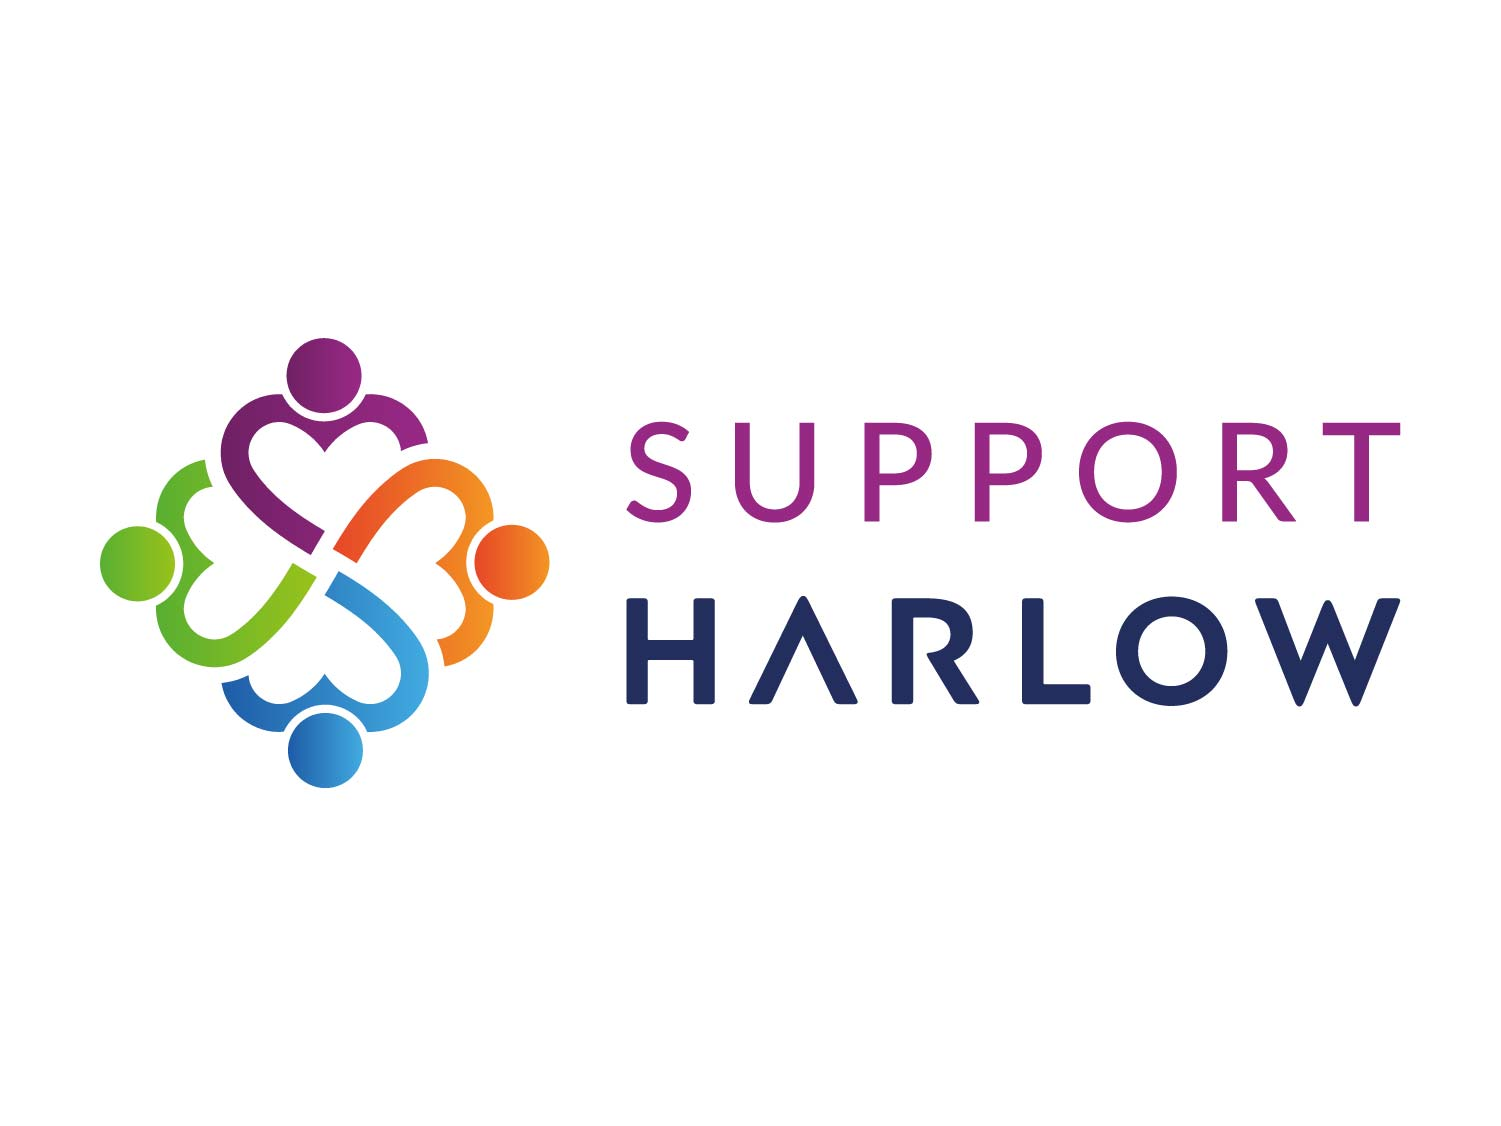 Support-Harlow-FI